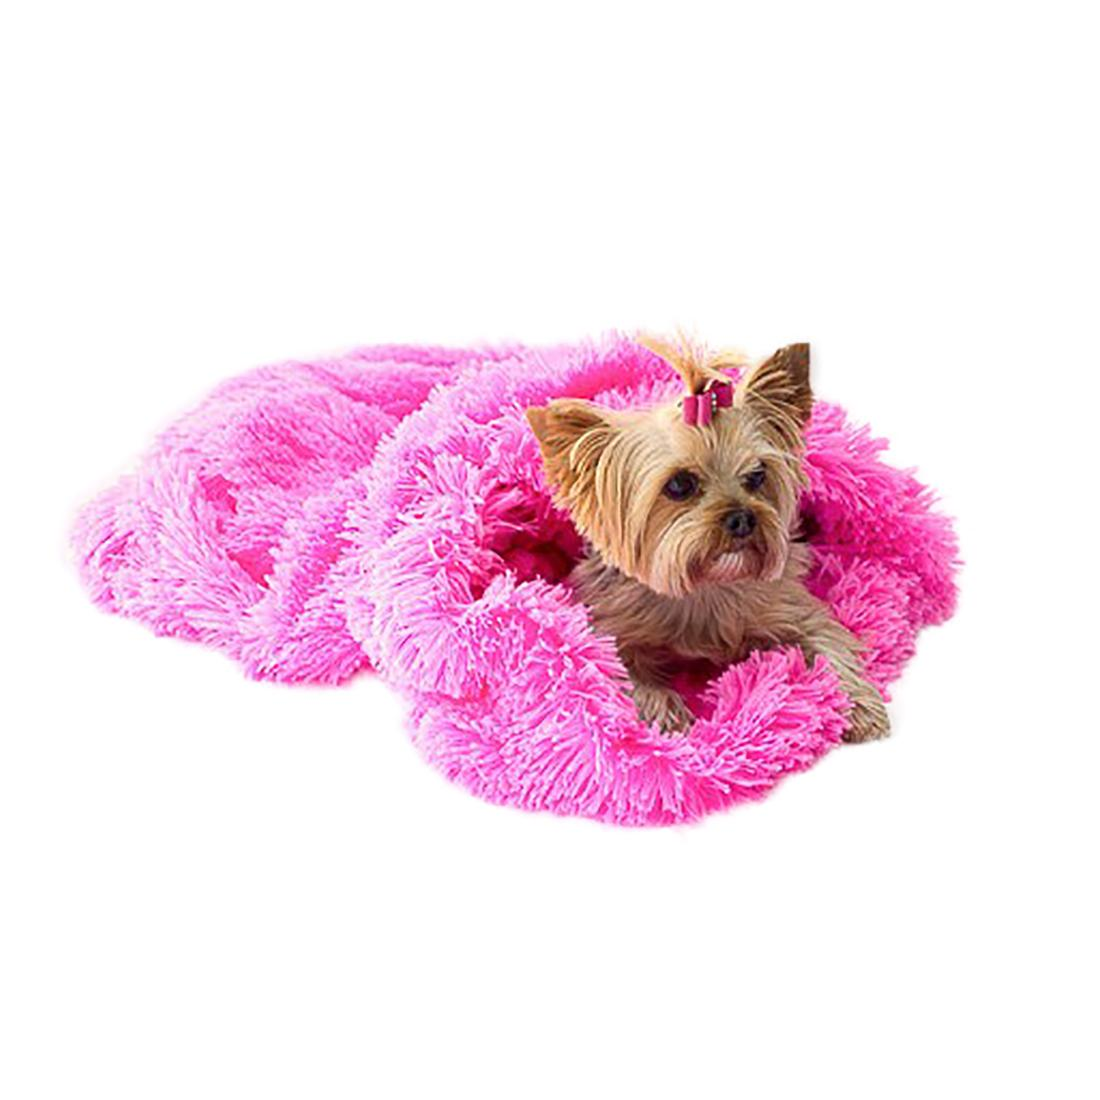 3-in-1 Cozy Dog Cuddle Sack - Hot Pink Powder Puff